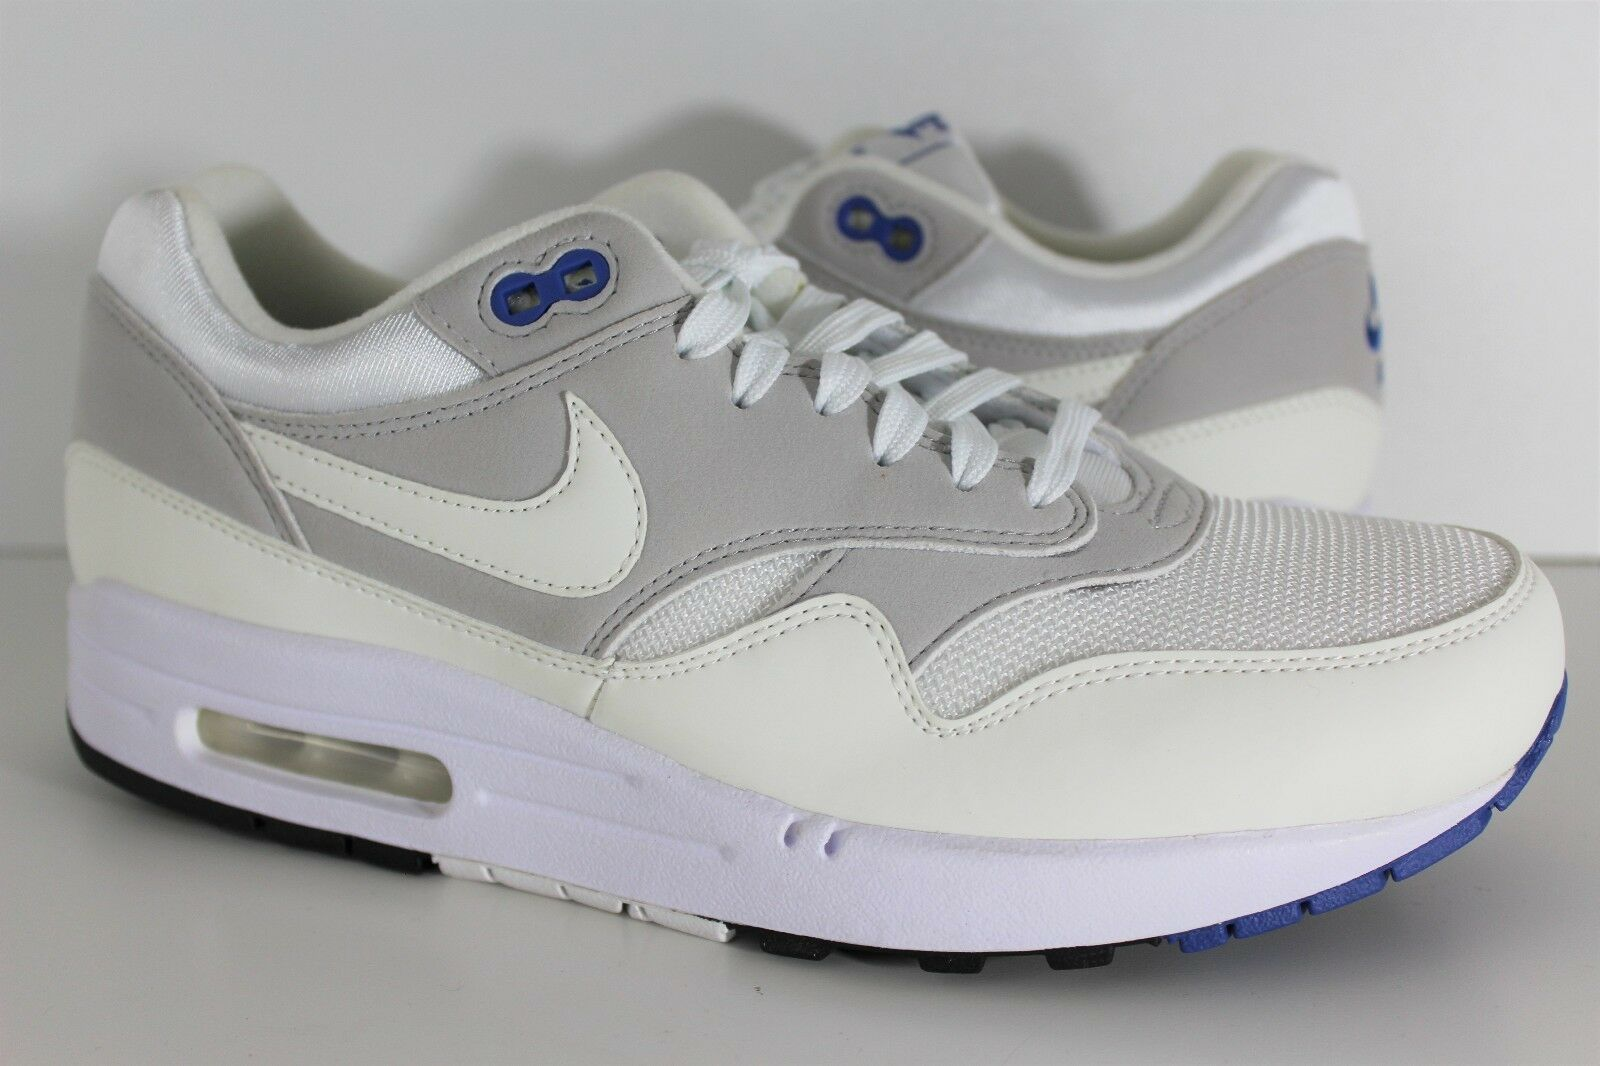 NIKE Air Max 1 CX QS color Change BG 811373 100 Brand New Mens 8 R388